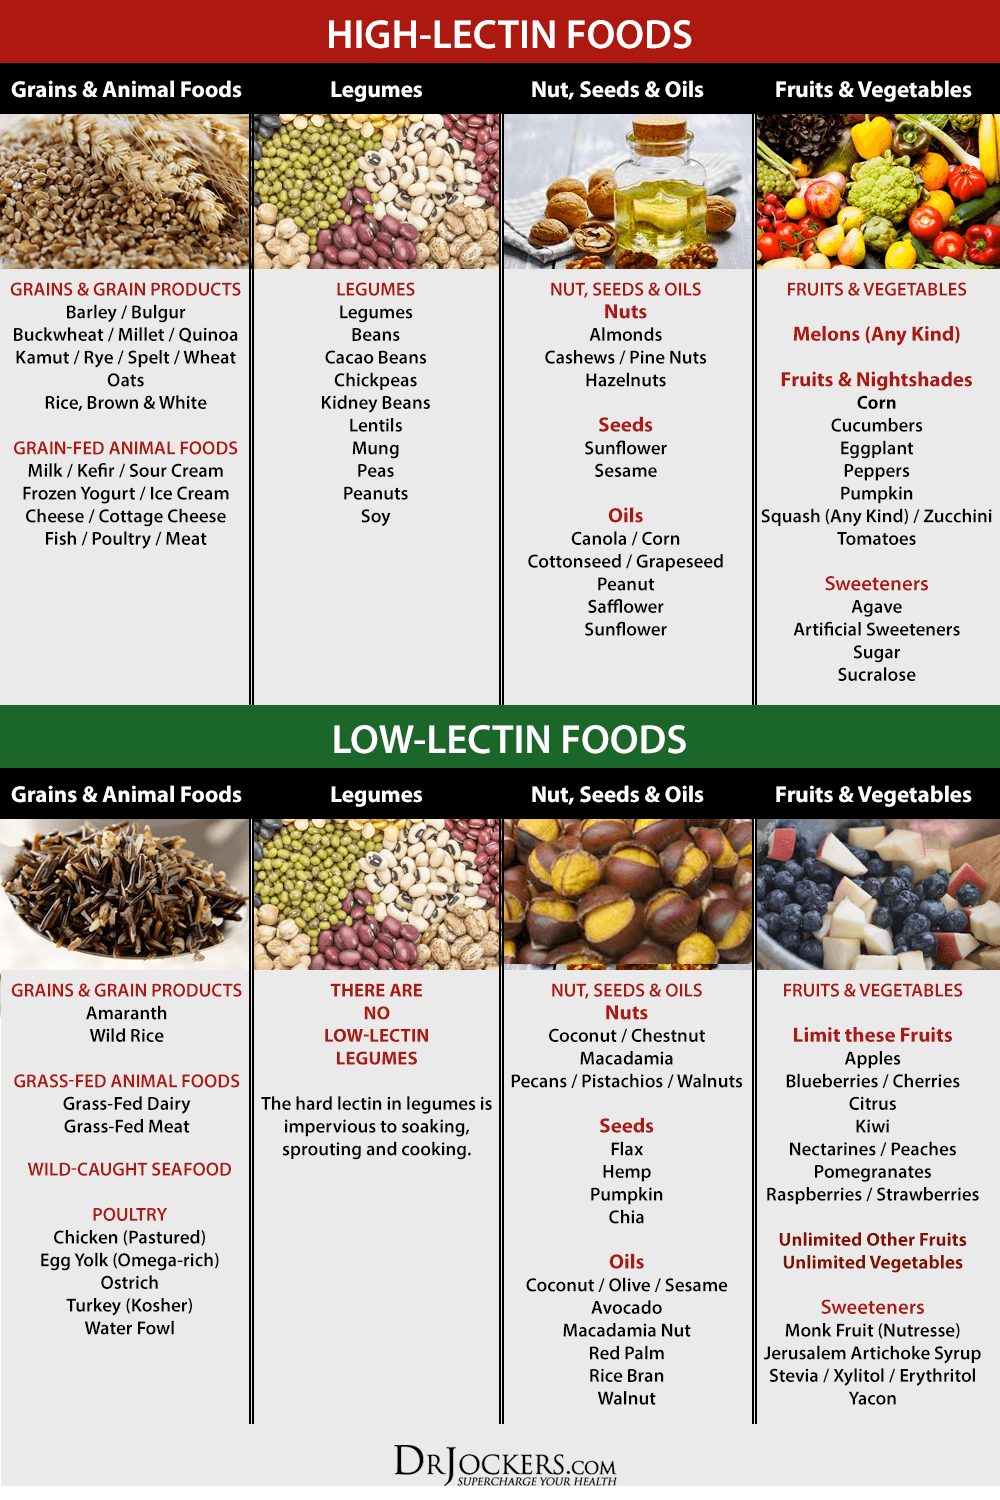 Foods Containing Lectins